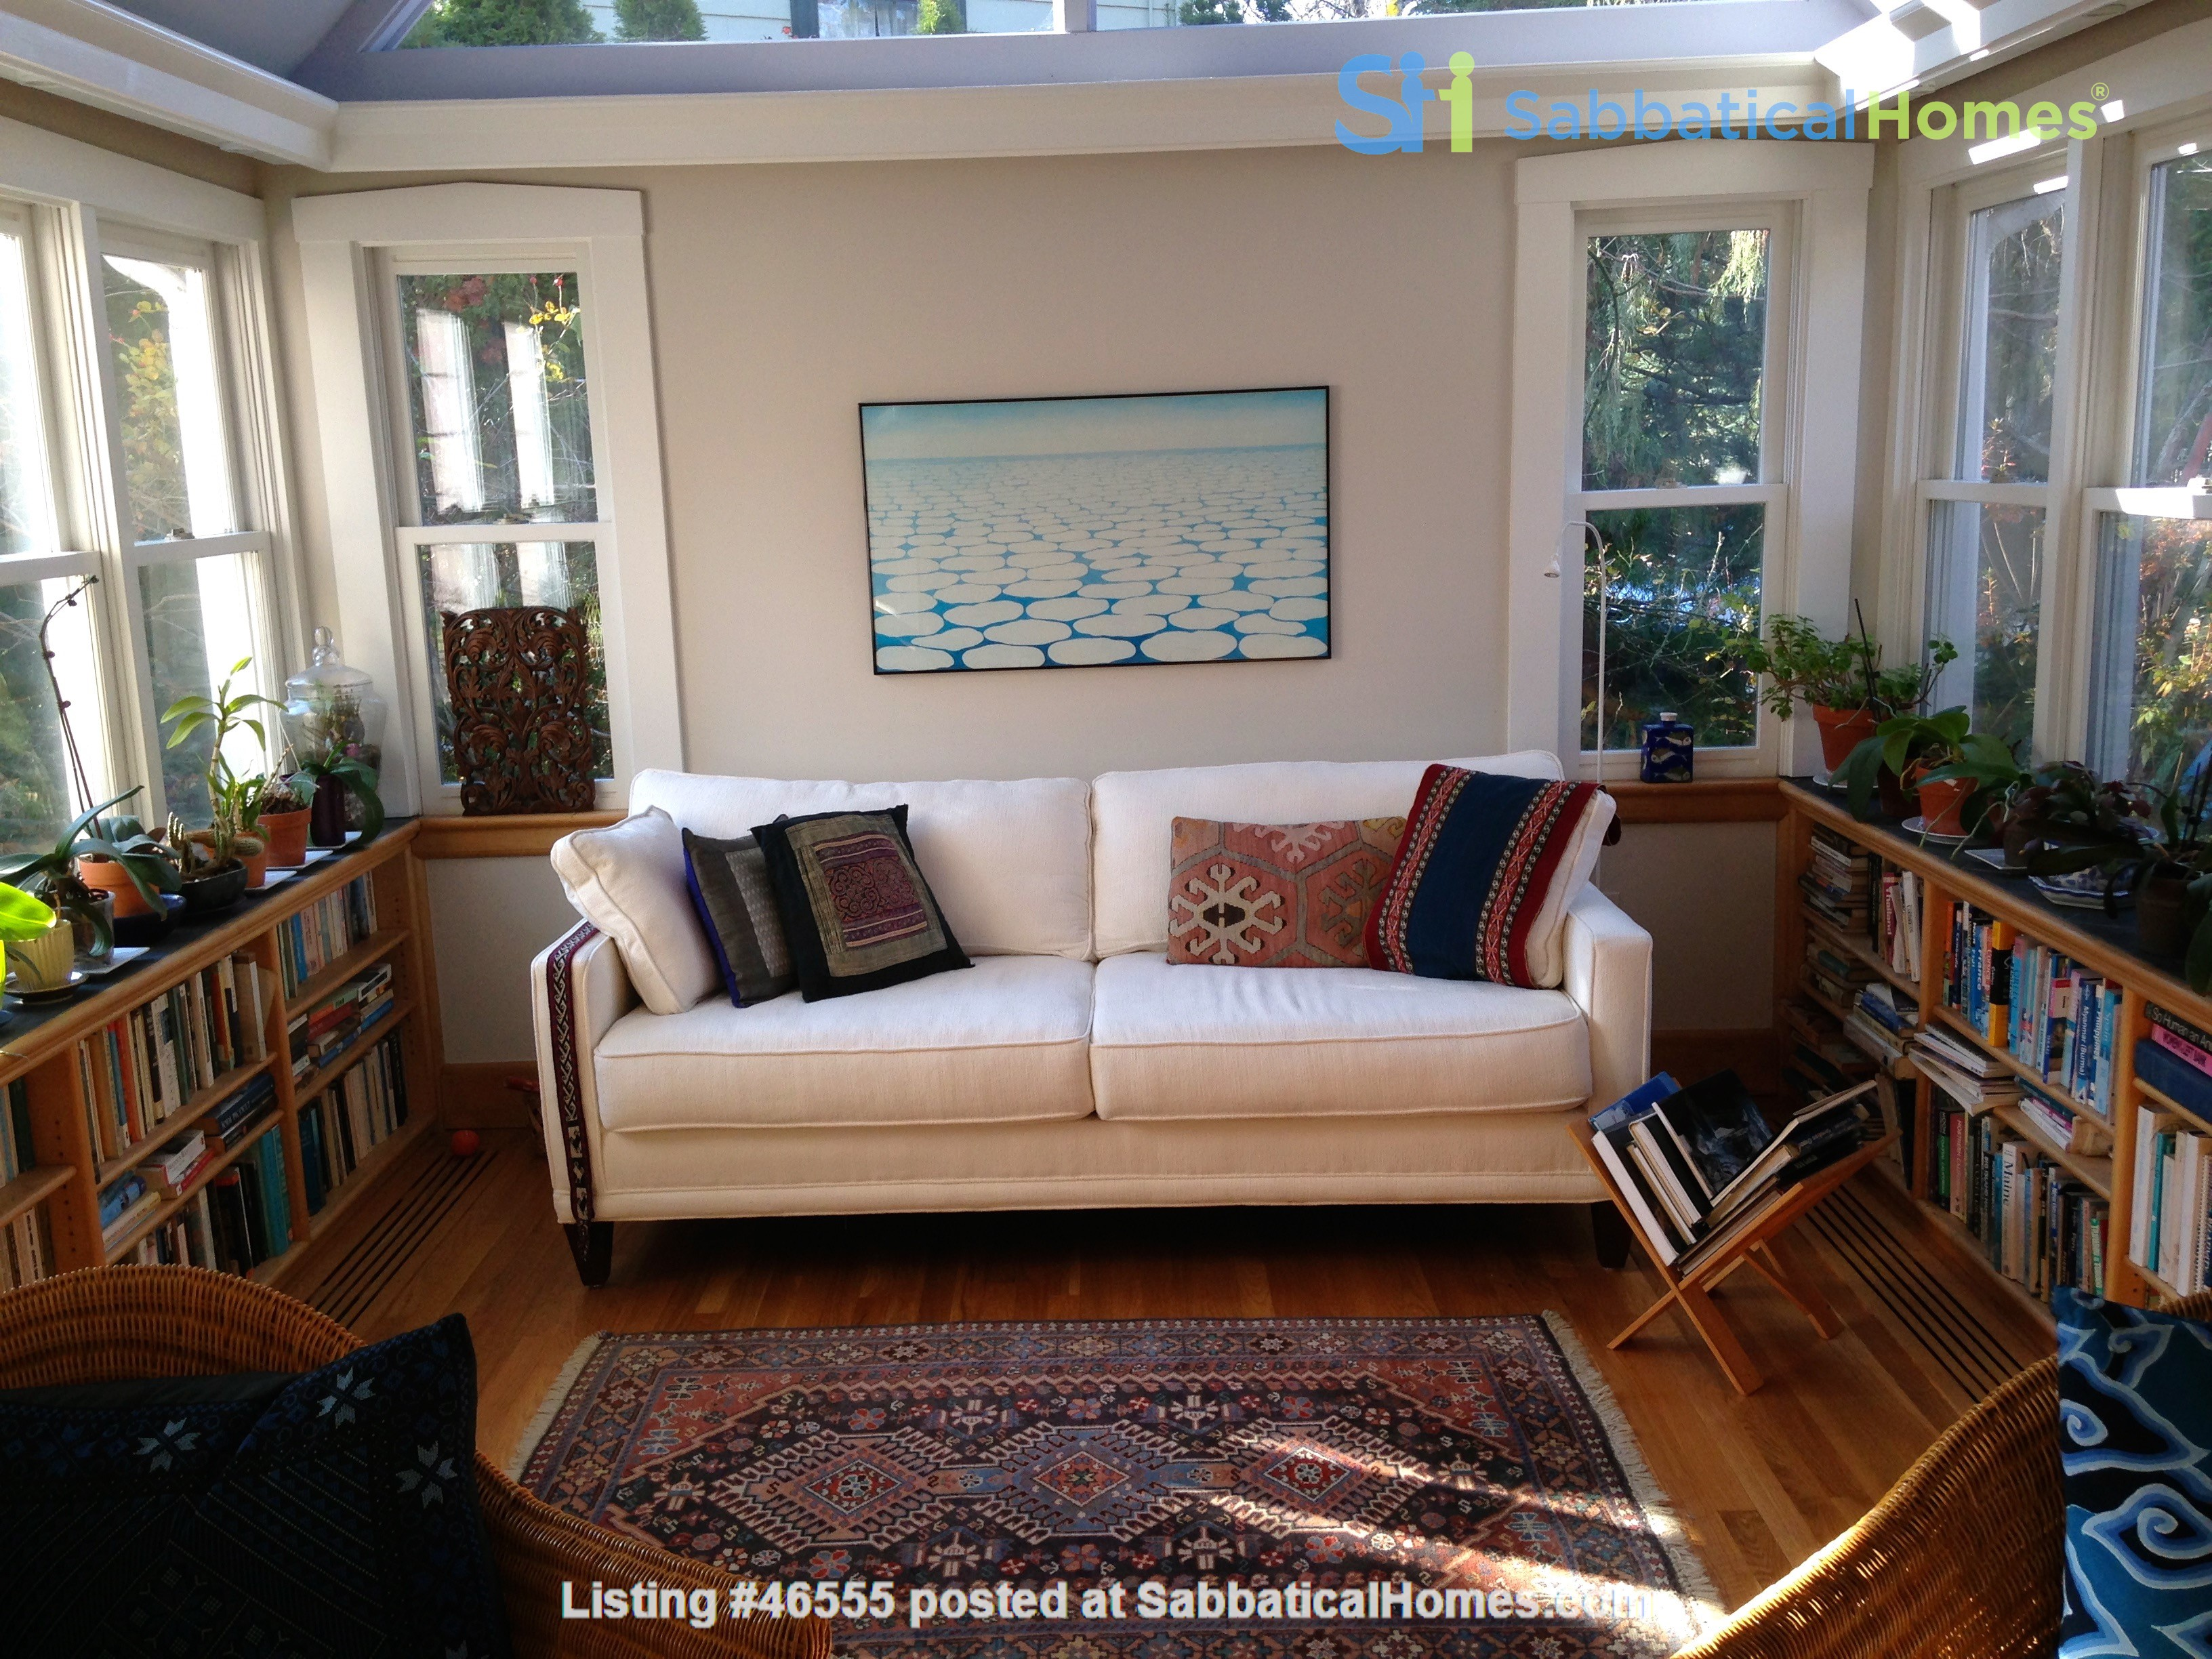 3BR furnished home in Newton on quiet street, next to park - walk to lake Home Rental in Newton, Massachusetts, United States 5